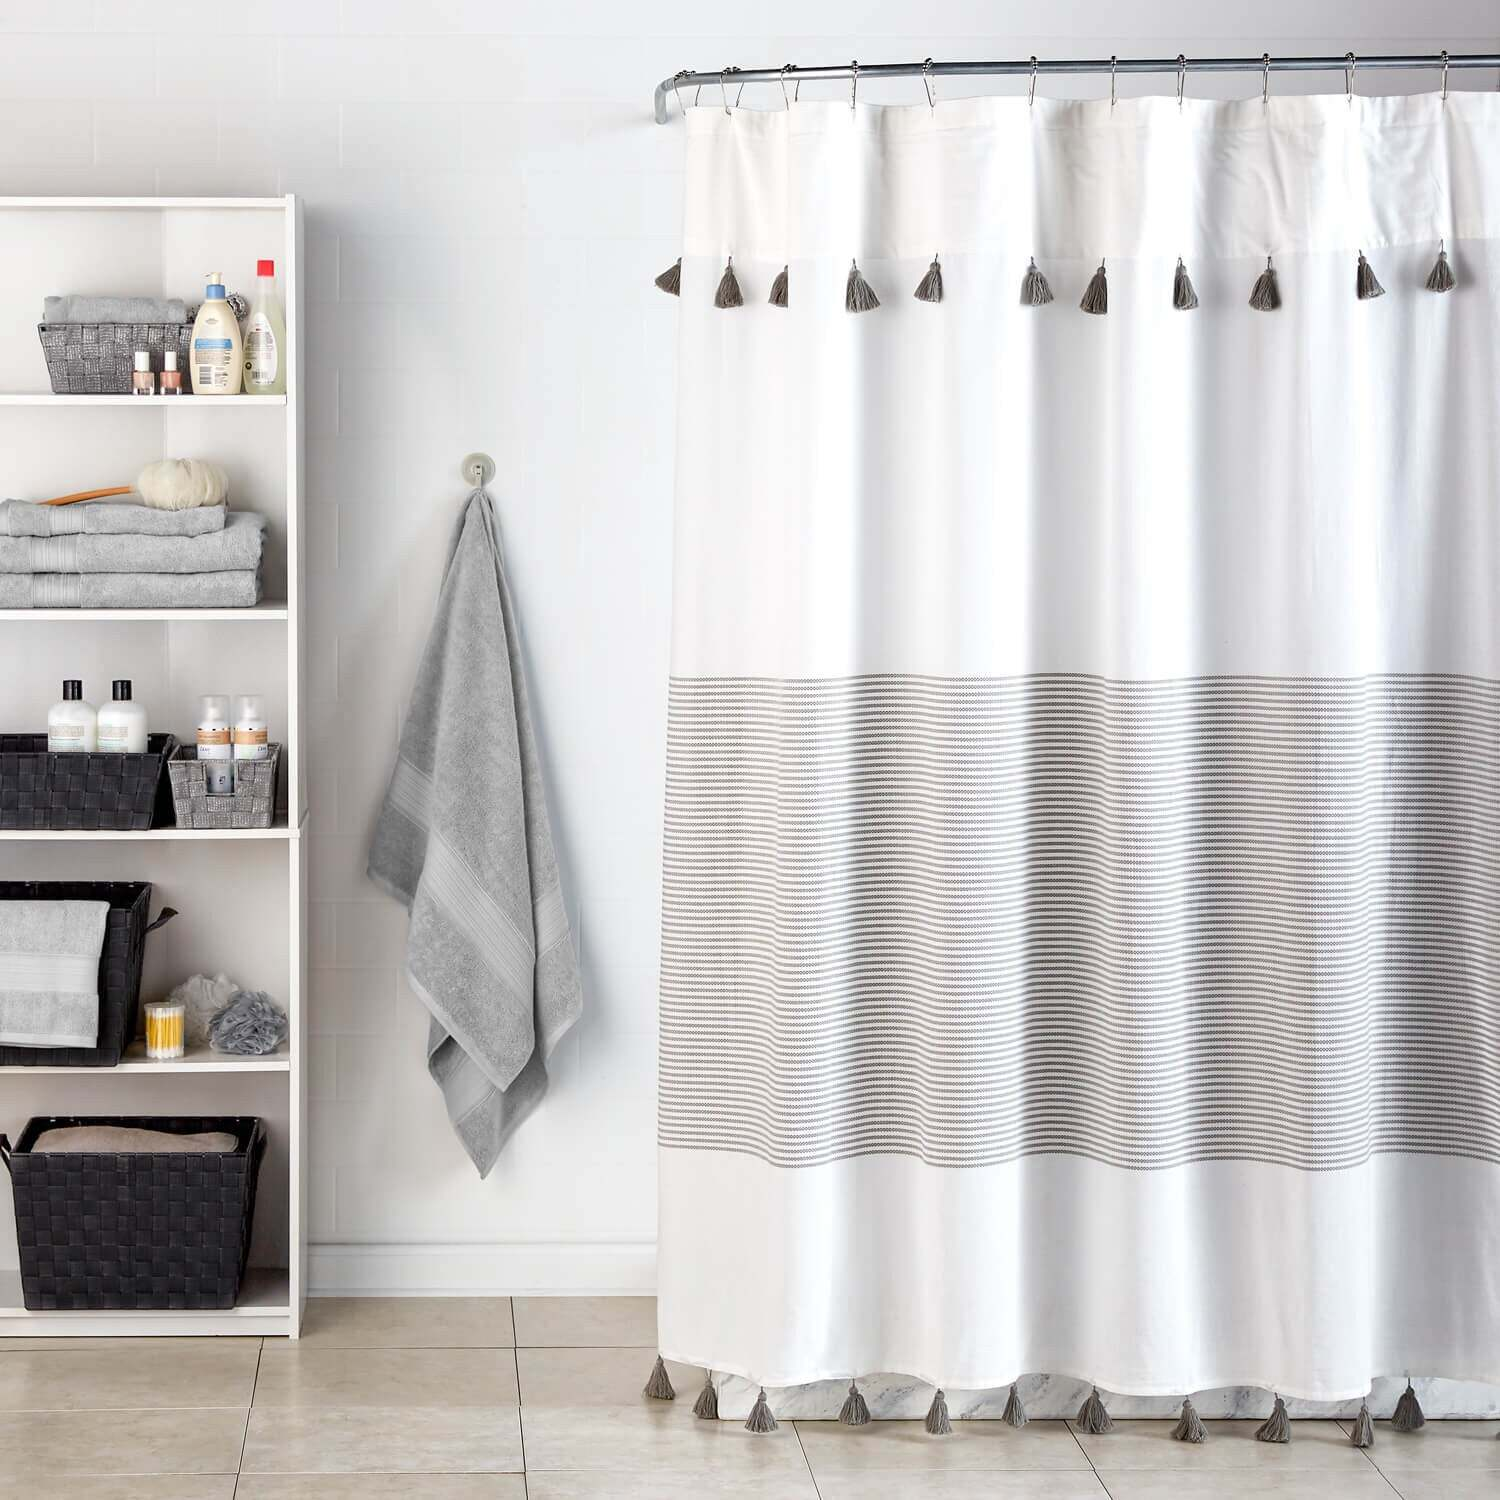 Curtain Couture Minimal And Stylish This Panama Stripe Shower Is Perfect For Adding Some Subtle Chic To Your Bathroom Its Made From 100 Cotton